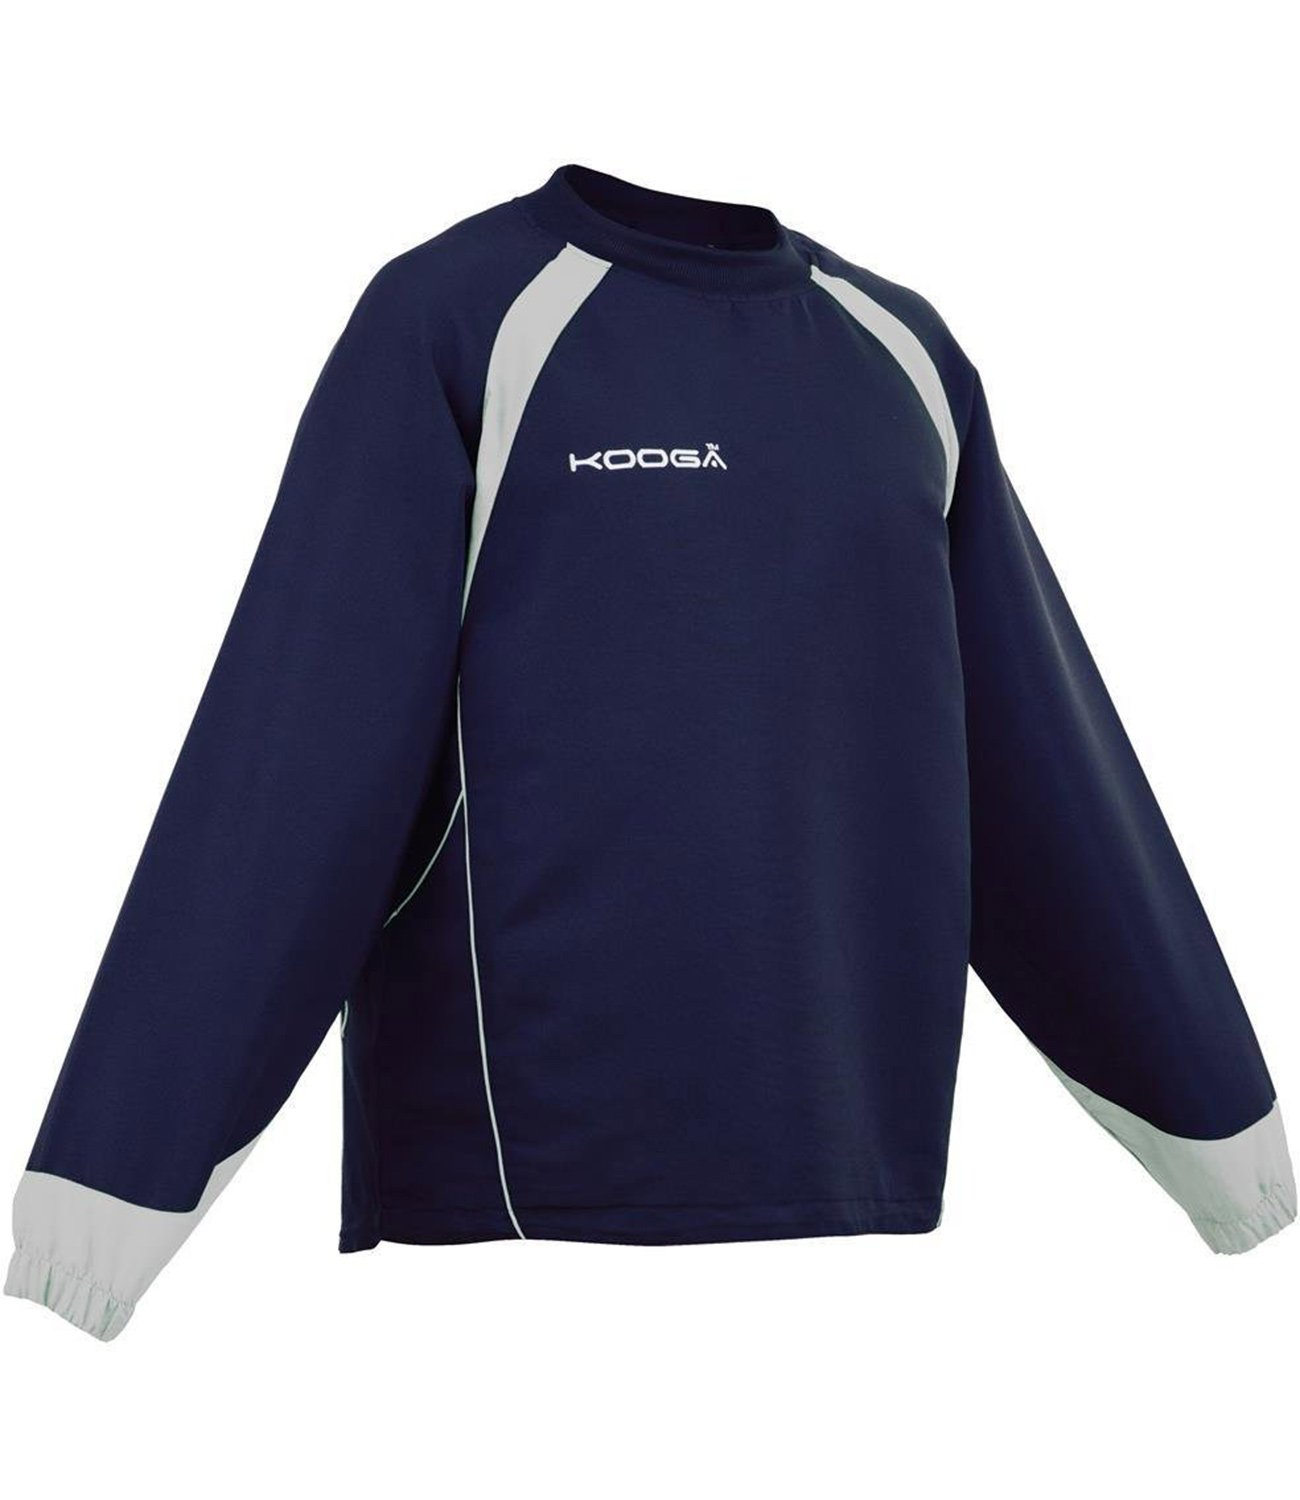 Kooga Vortex II Top Training Jacke